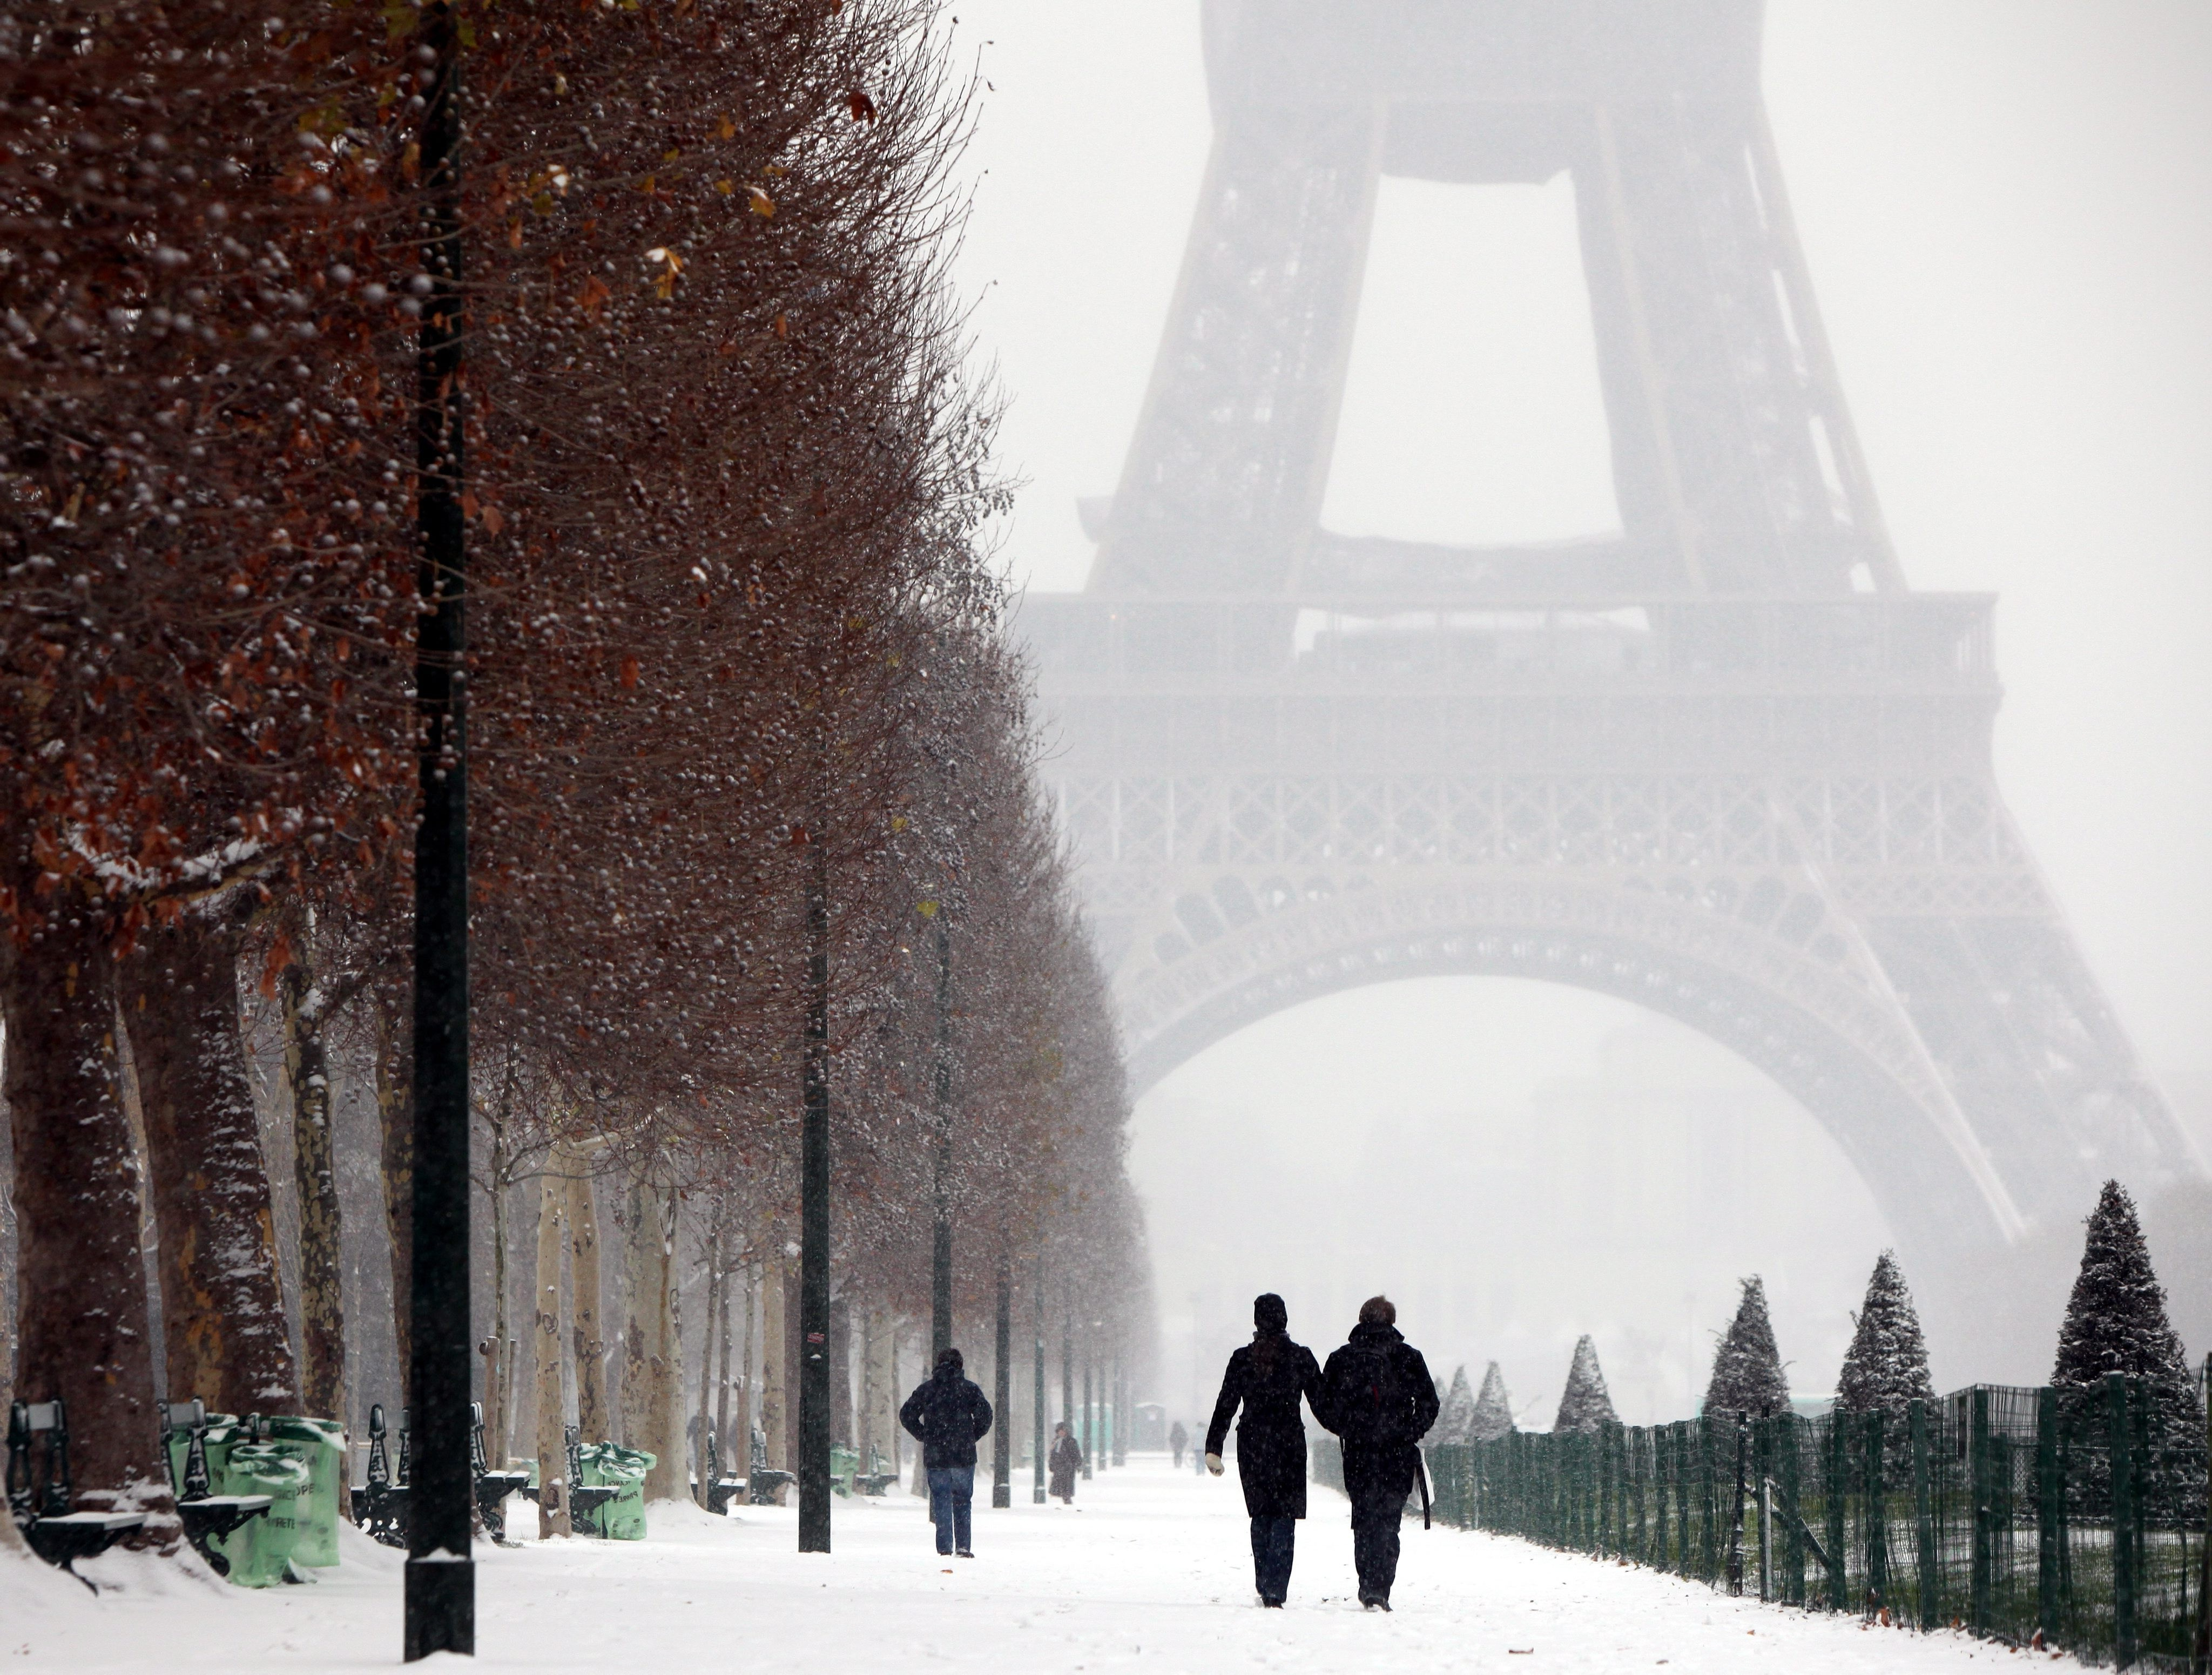 Drinking Girl Wallpaper Download Paris From Paris With Love Winter Snow Wallpapers Hd